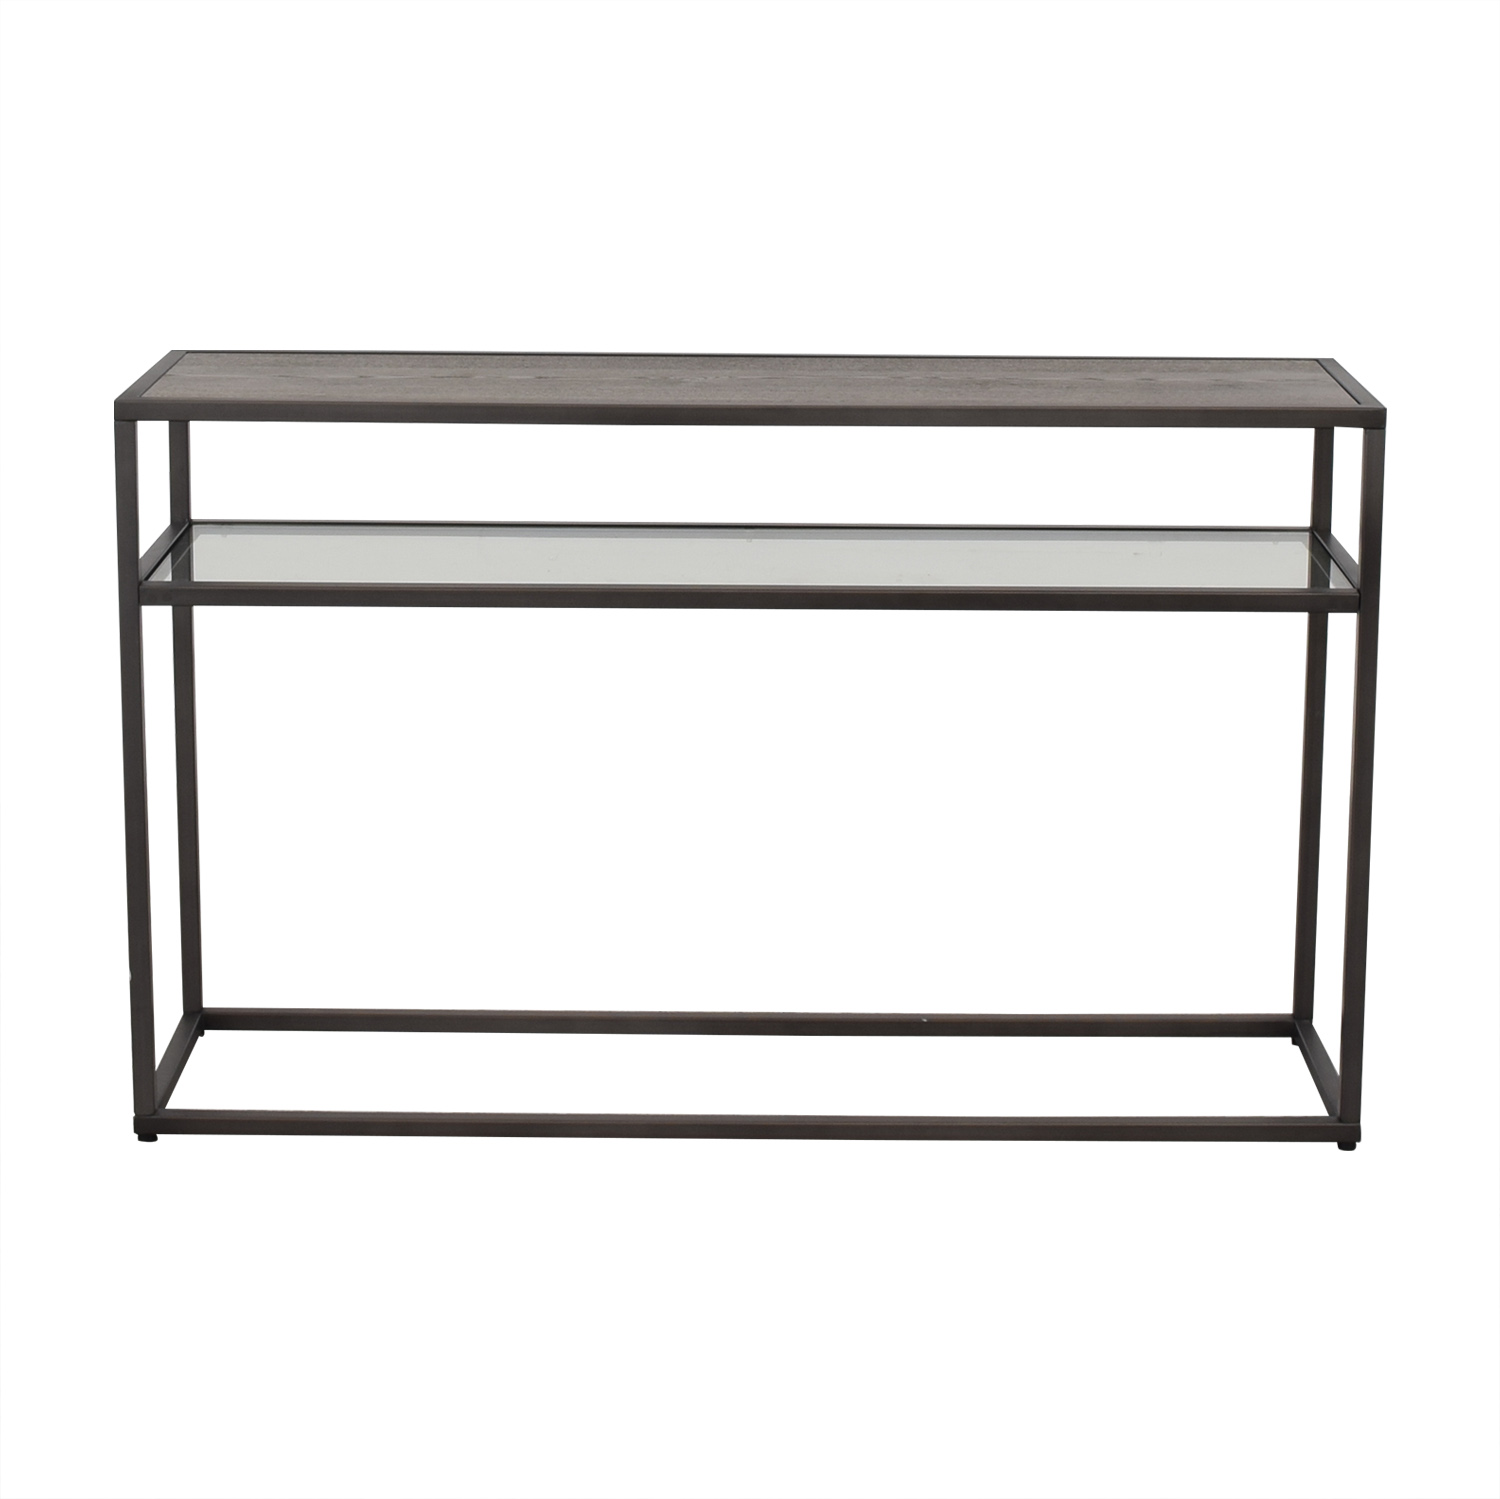 Crate & Barrel Switch Console Table / Accent Tables